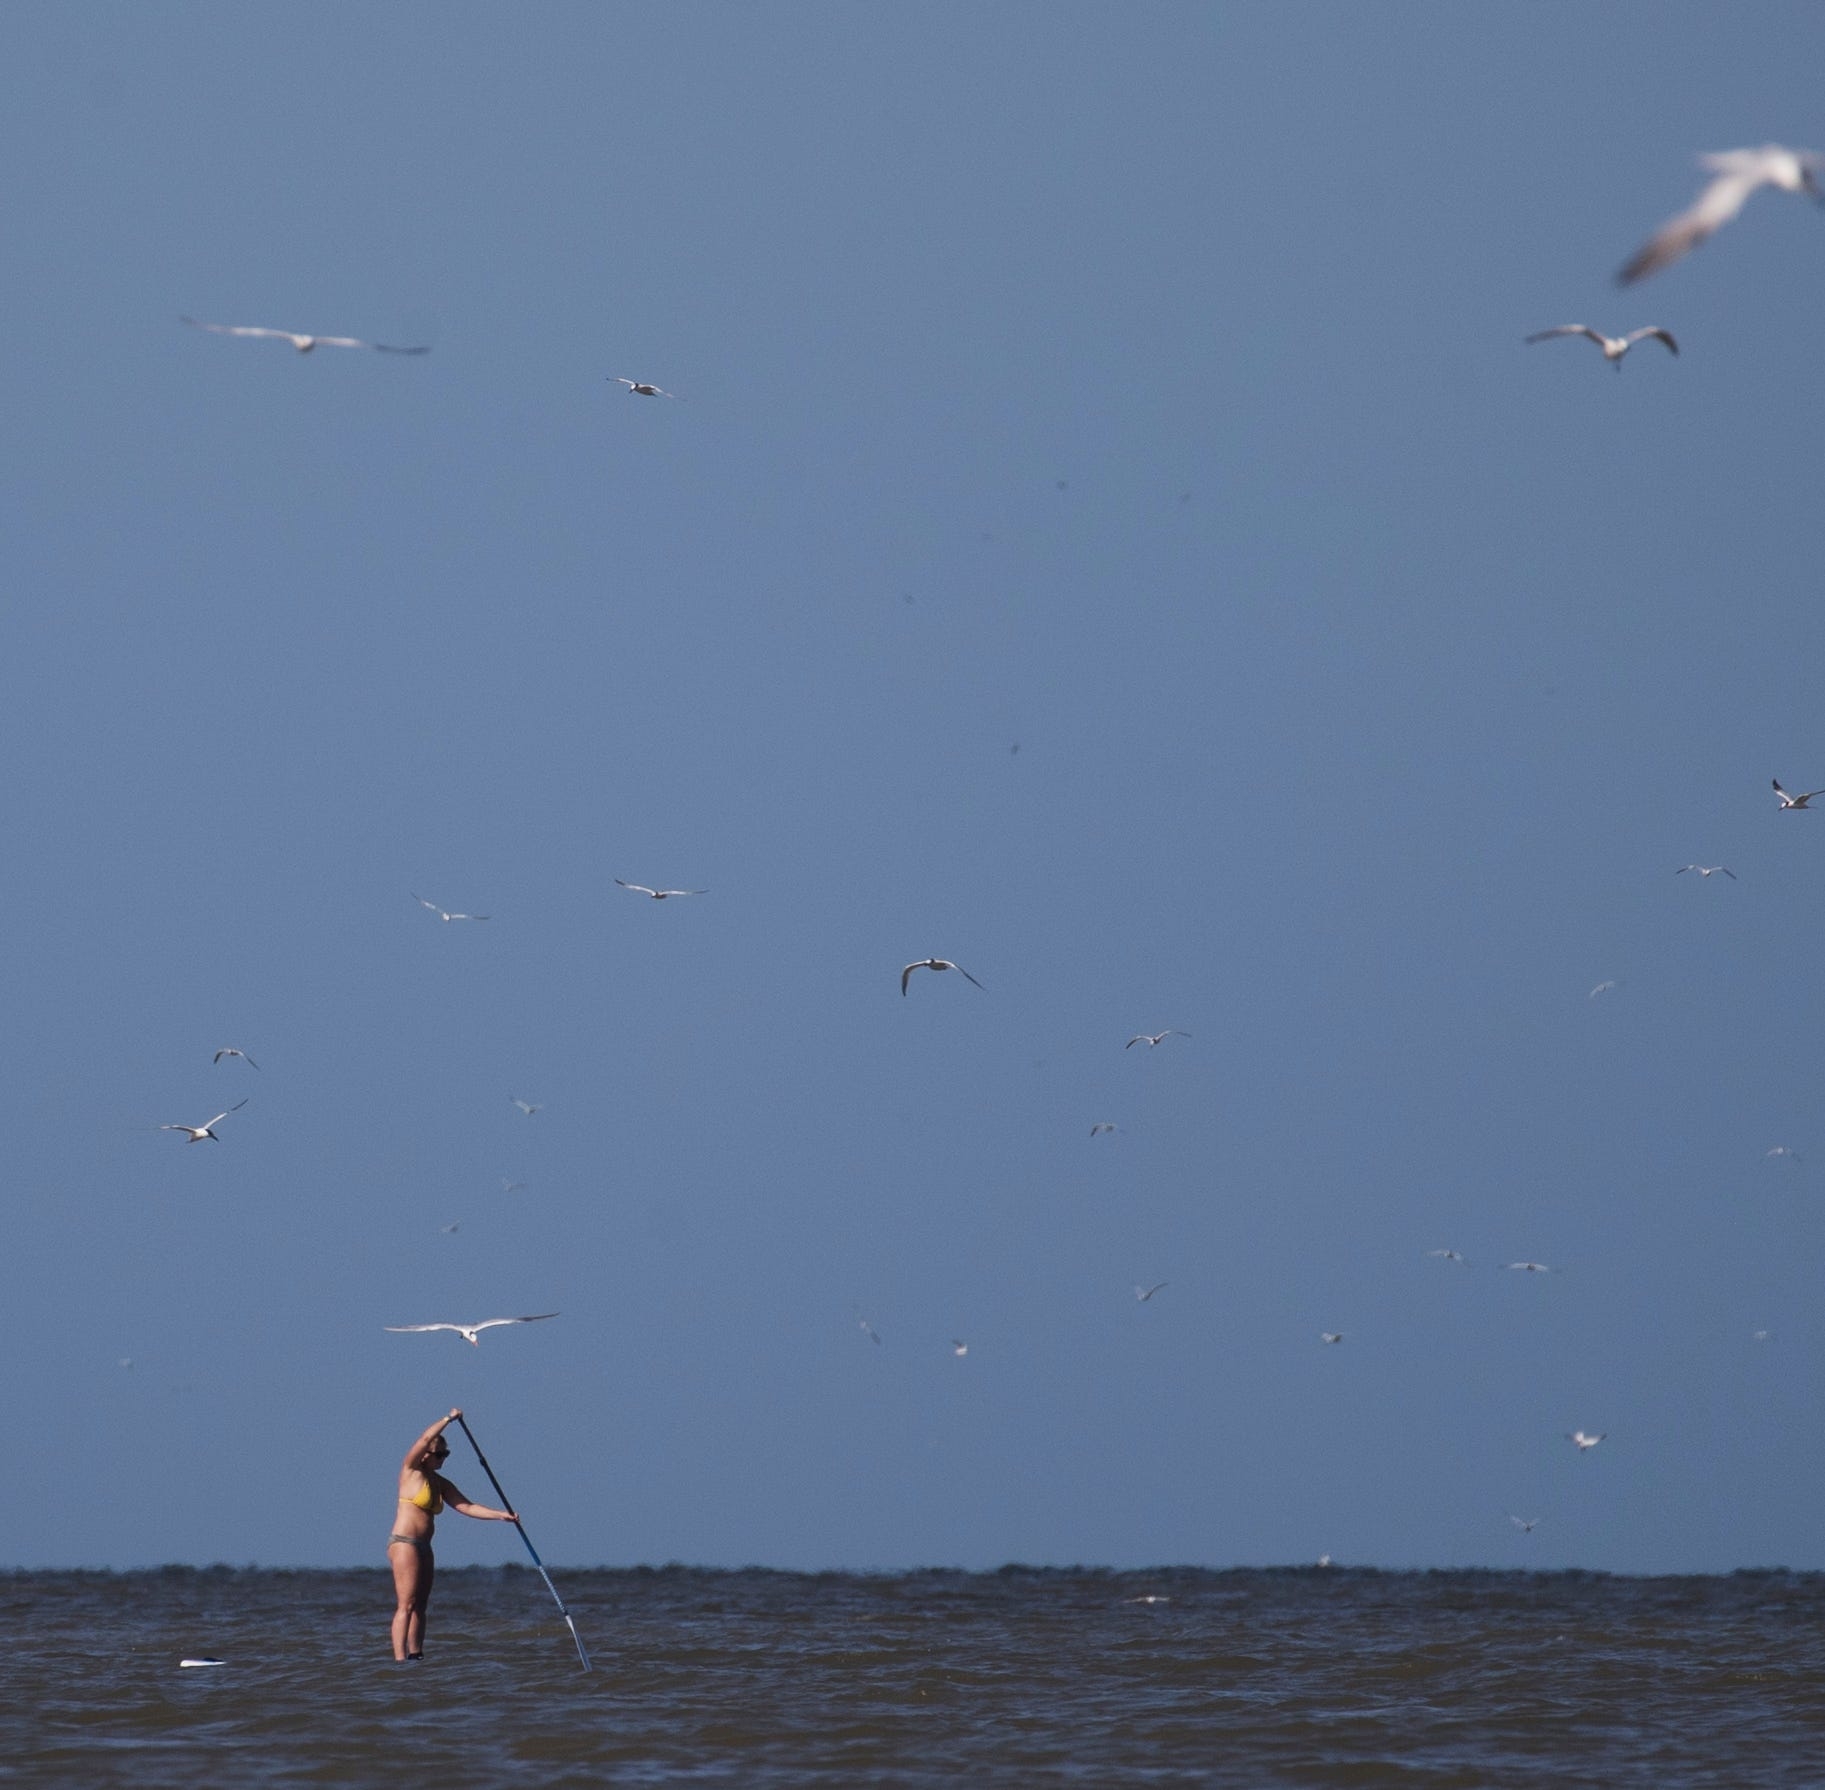 Samples show red tide scarce in Collier, patchy across Lee